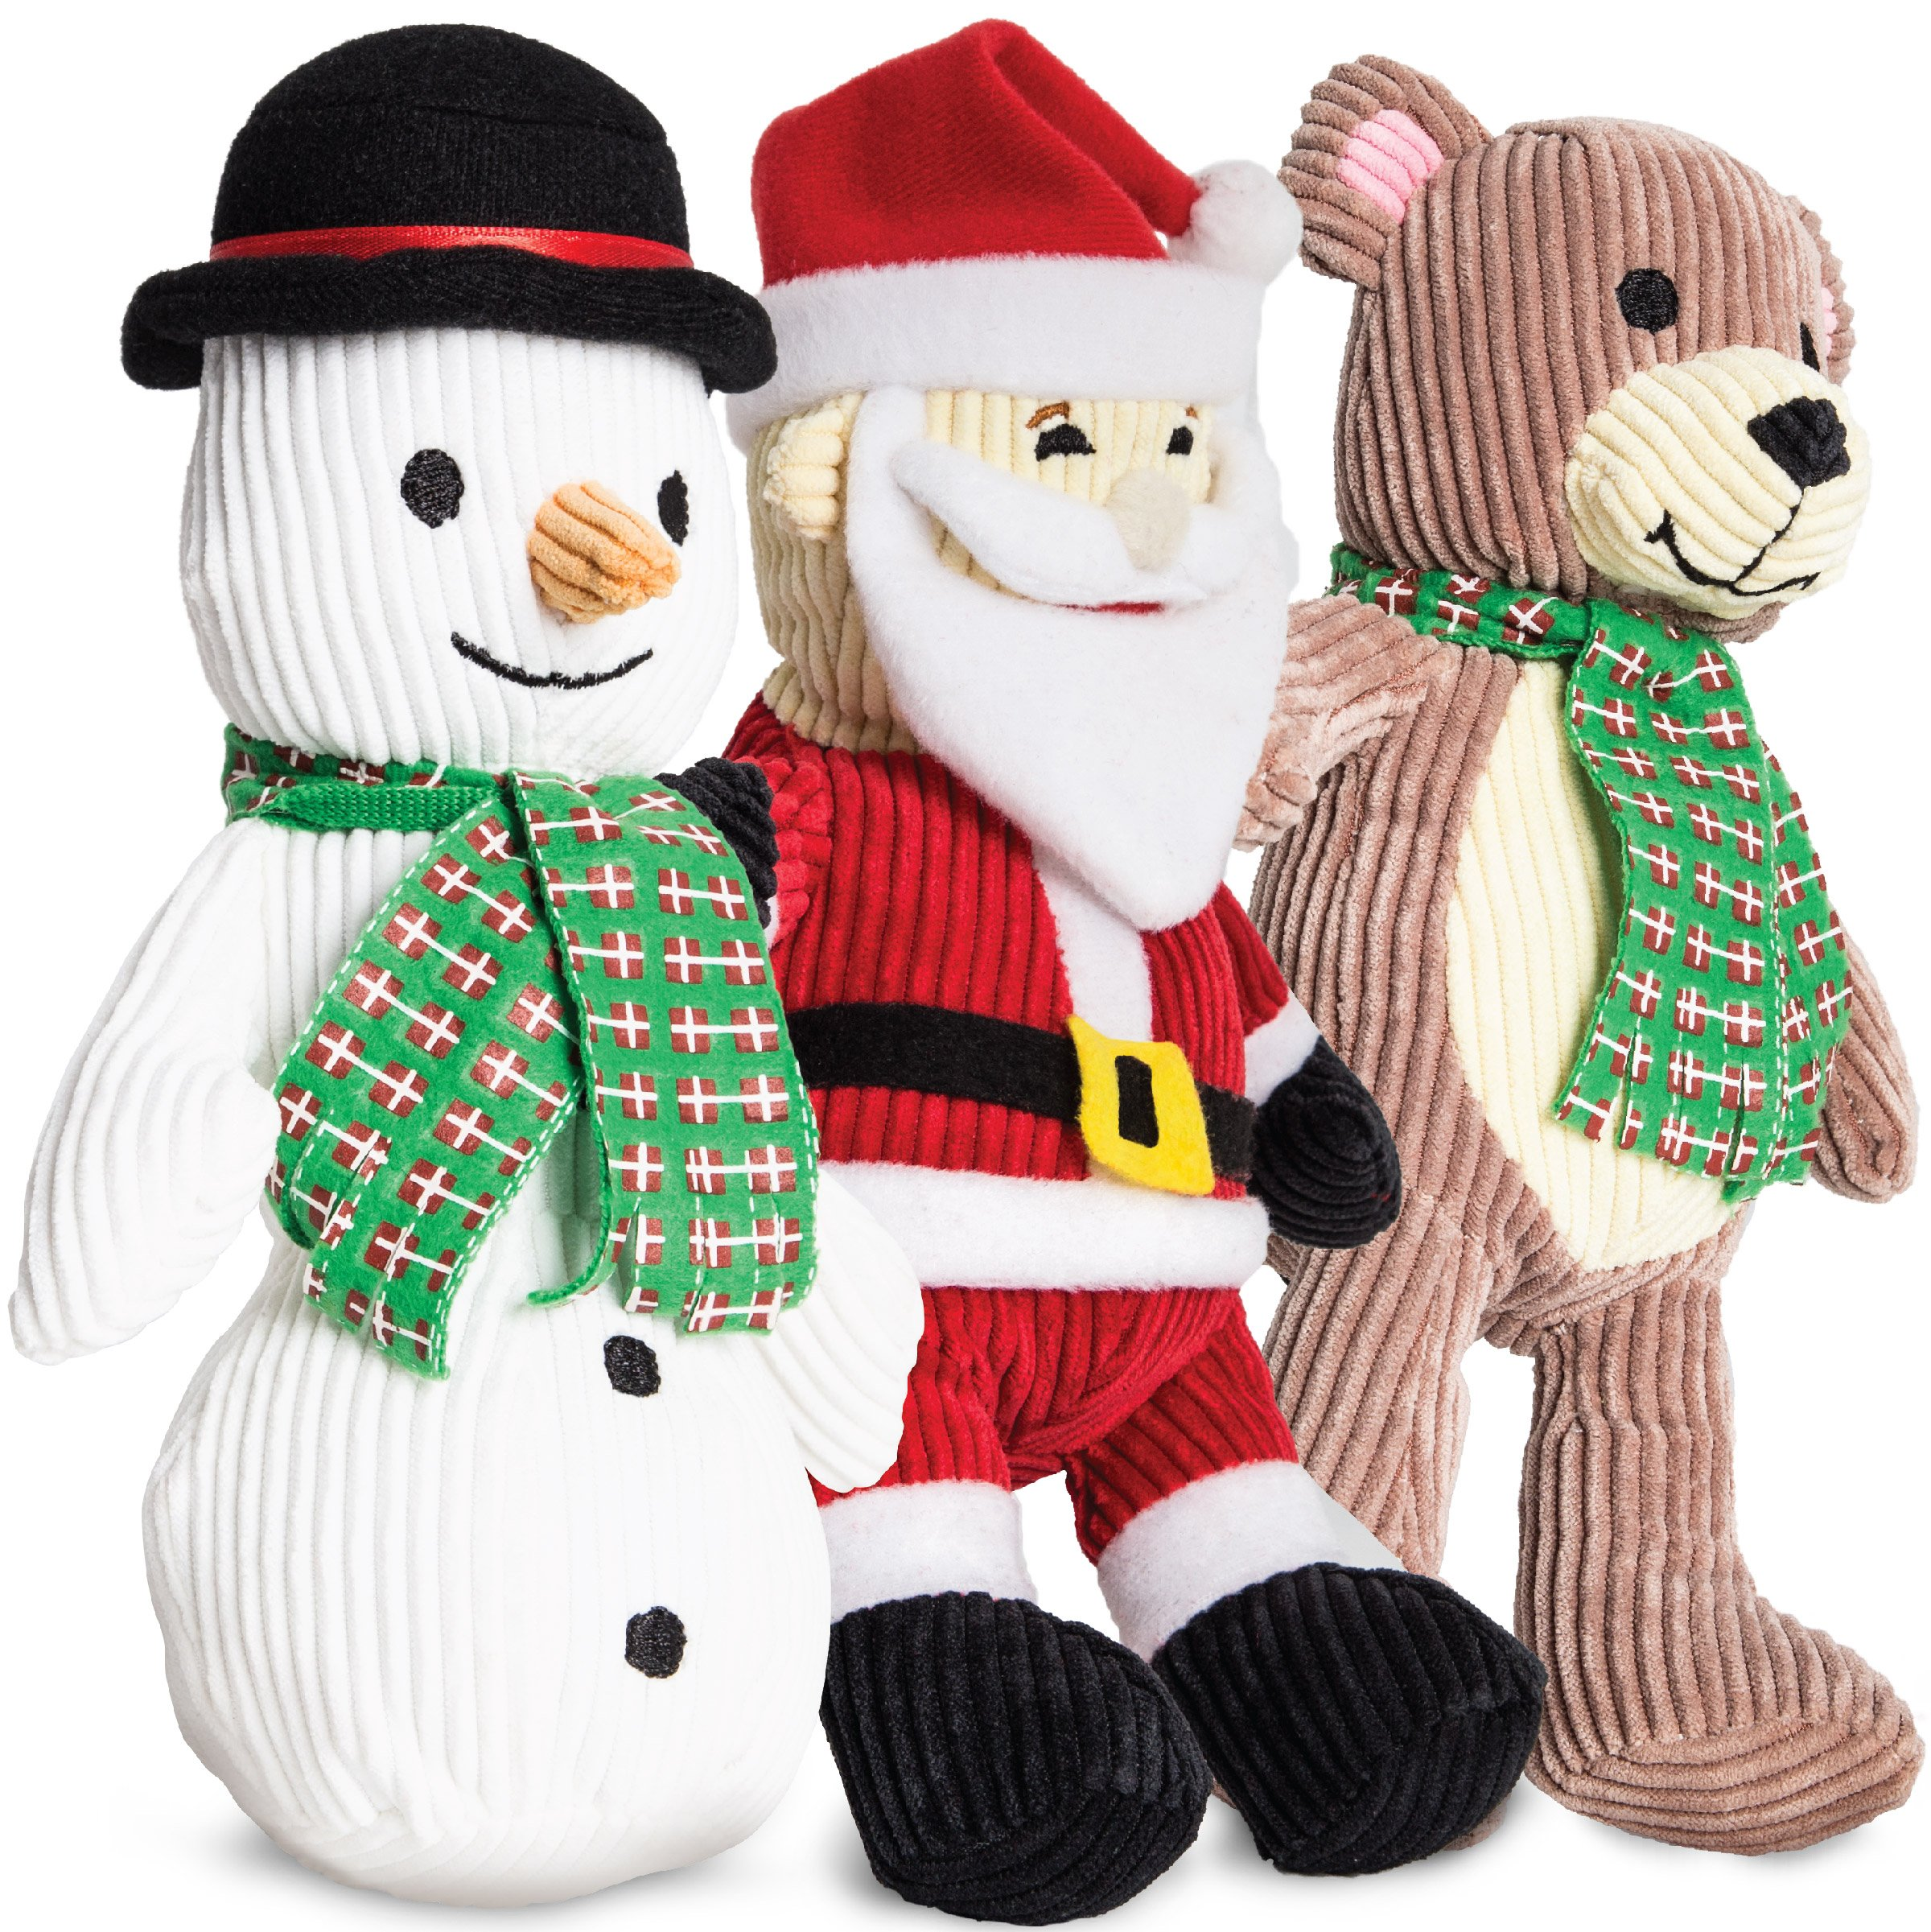 Animal Planet 3 Pack Holiday Plush Corduroy Chew Toy Set For Dogs, Hidden Built-In Squeakers, Made W/Soft Fabric & Durable Stitching, Santa/Snowman/Bear Designs, Perfect For Playtime